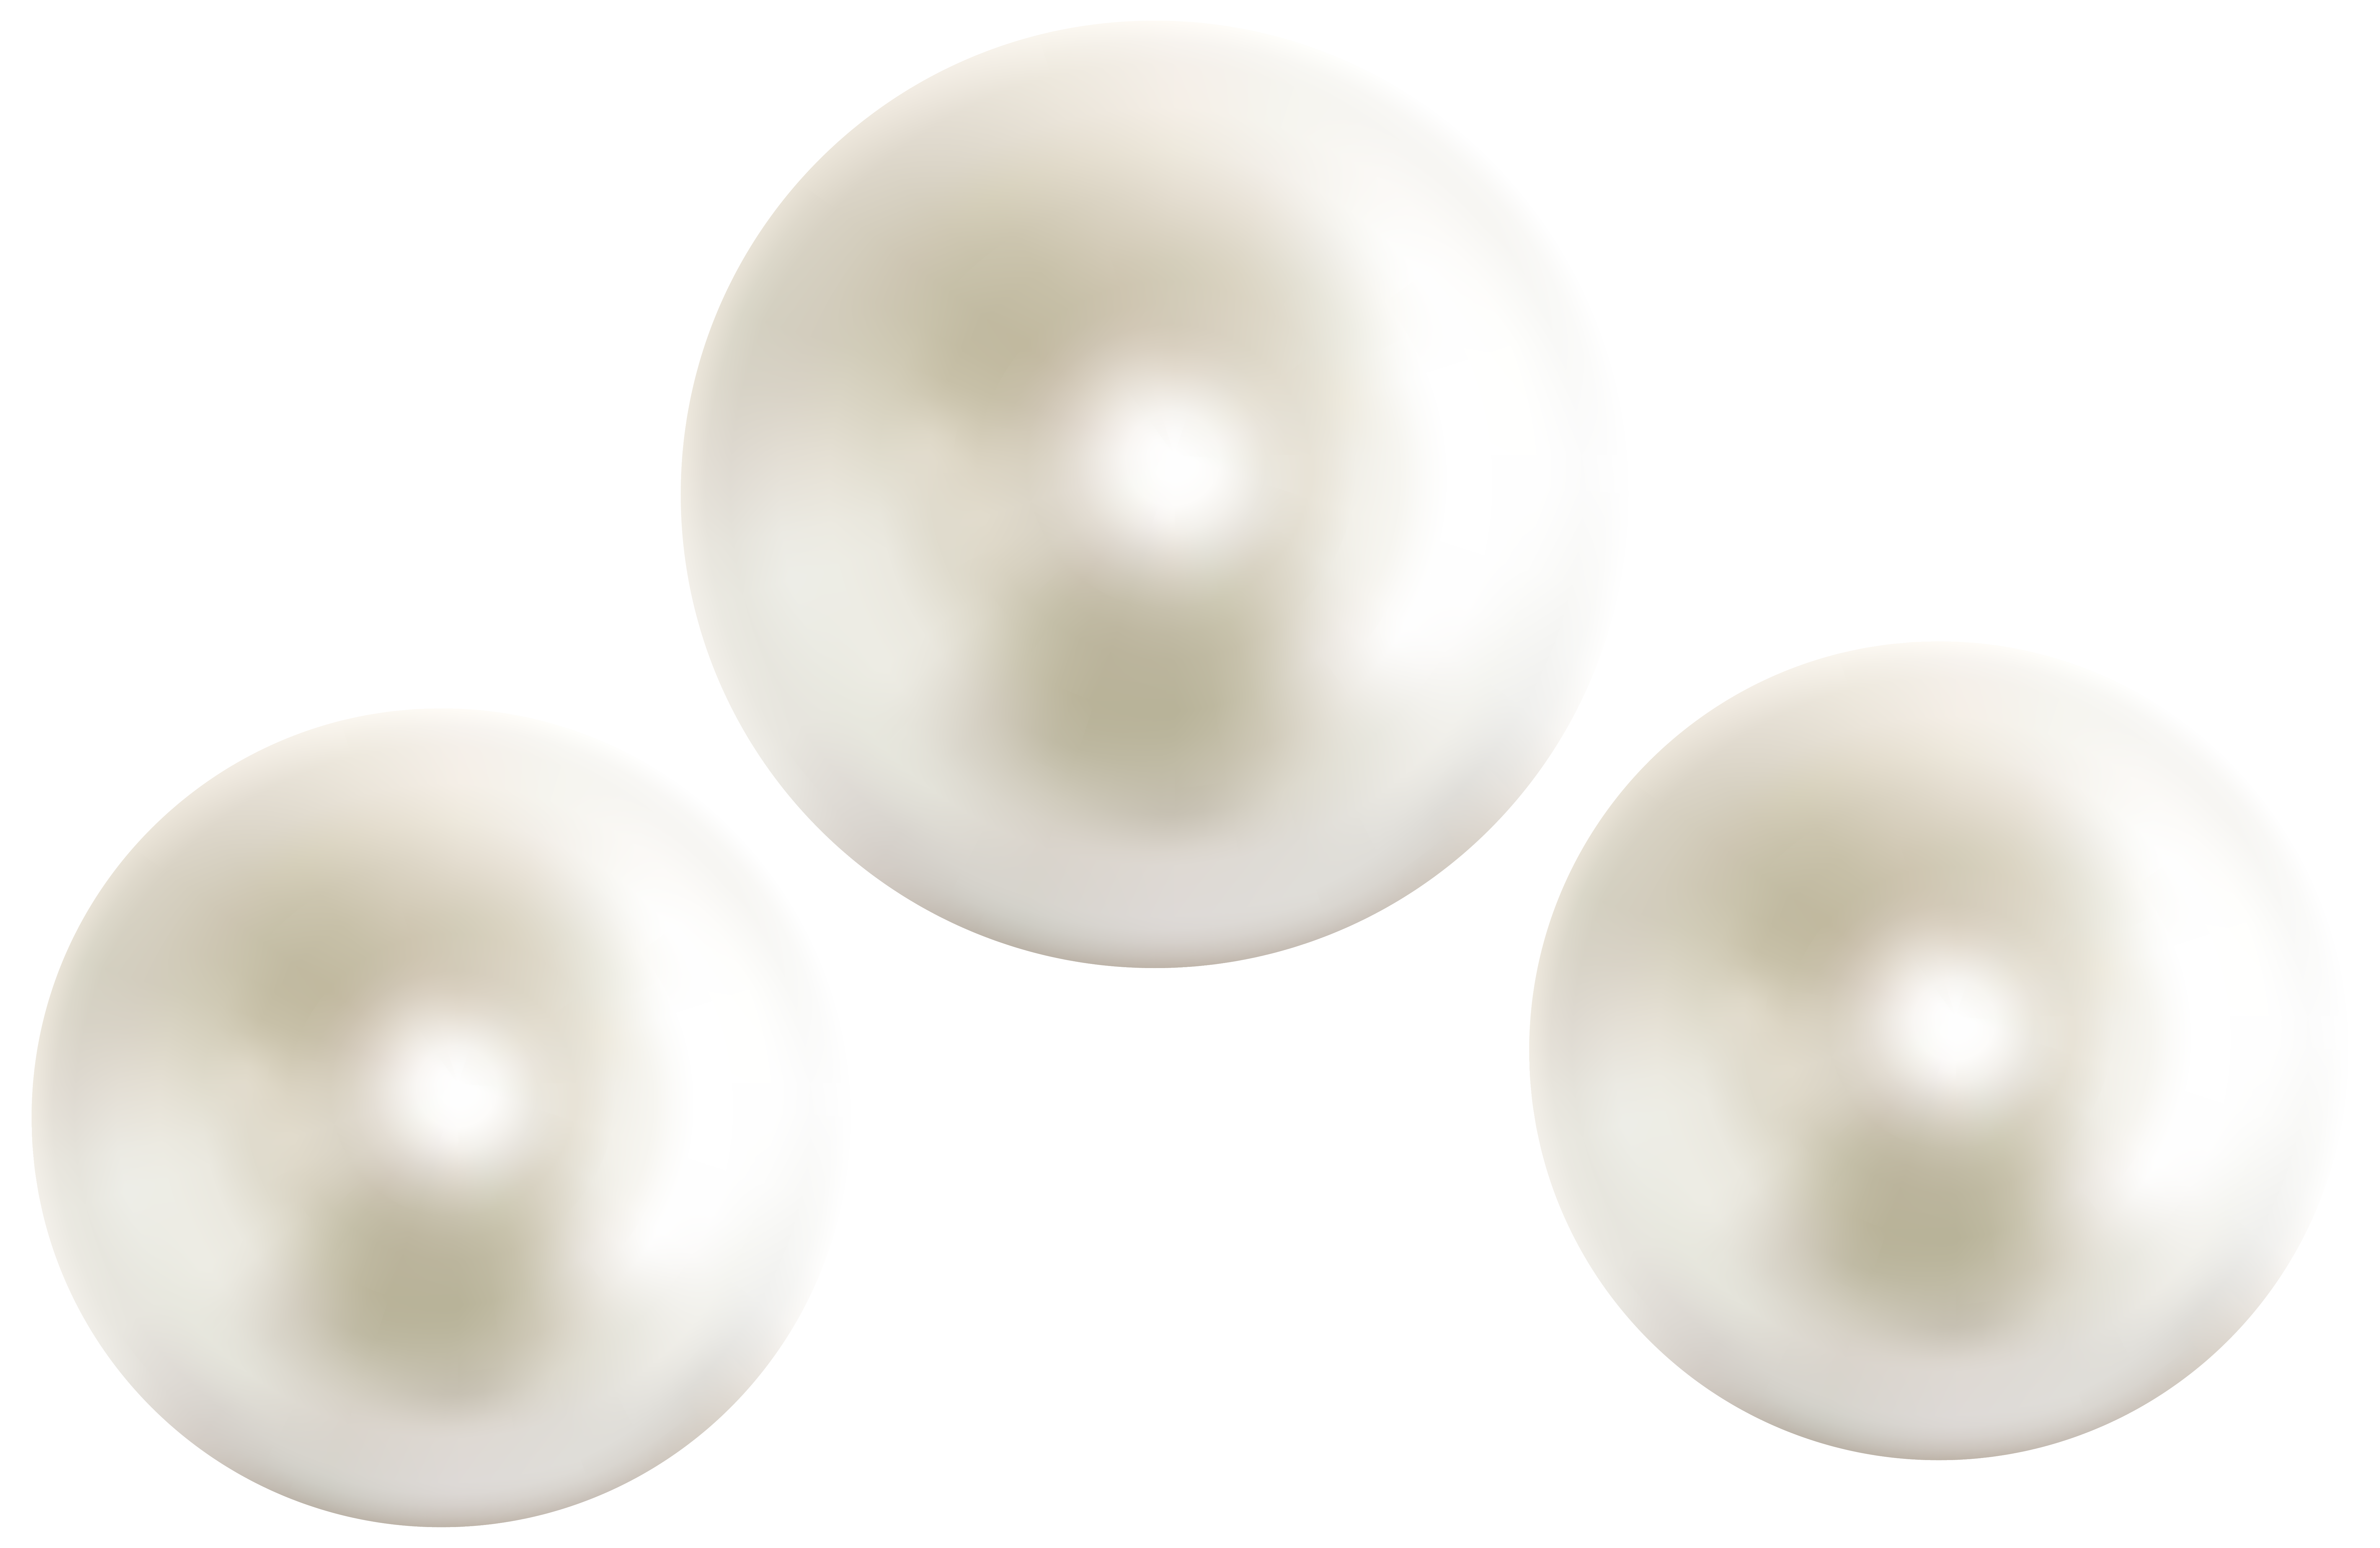 Shell clipart pearl clipart. Pearls png clip art